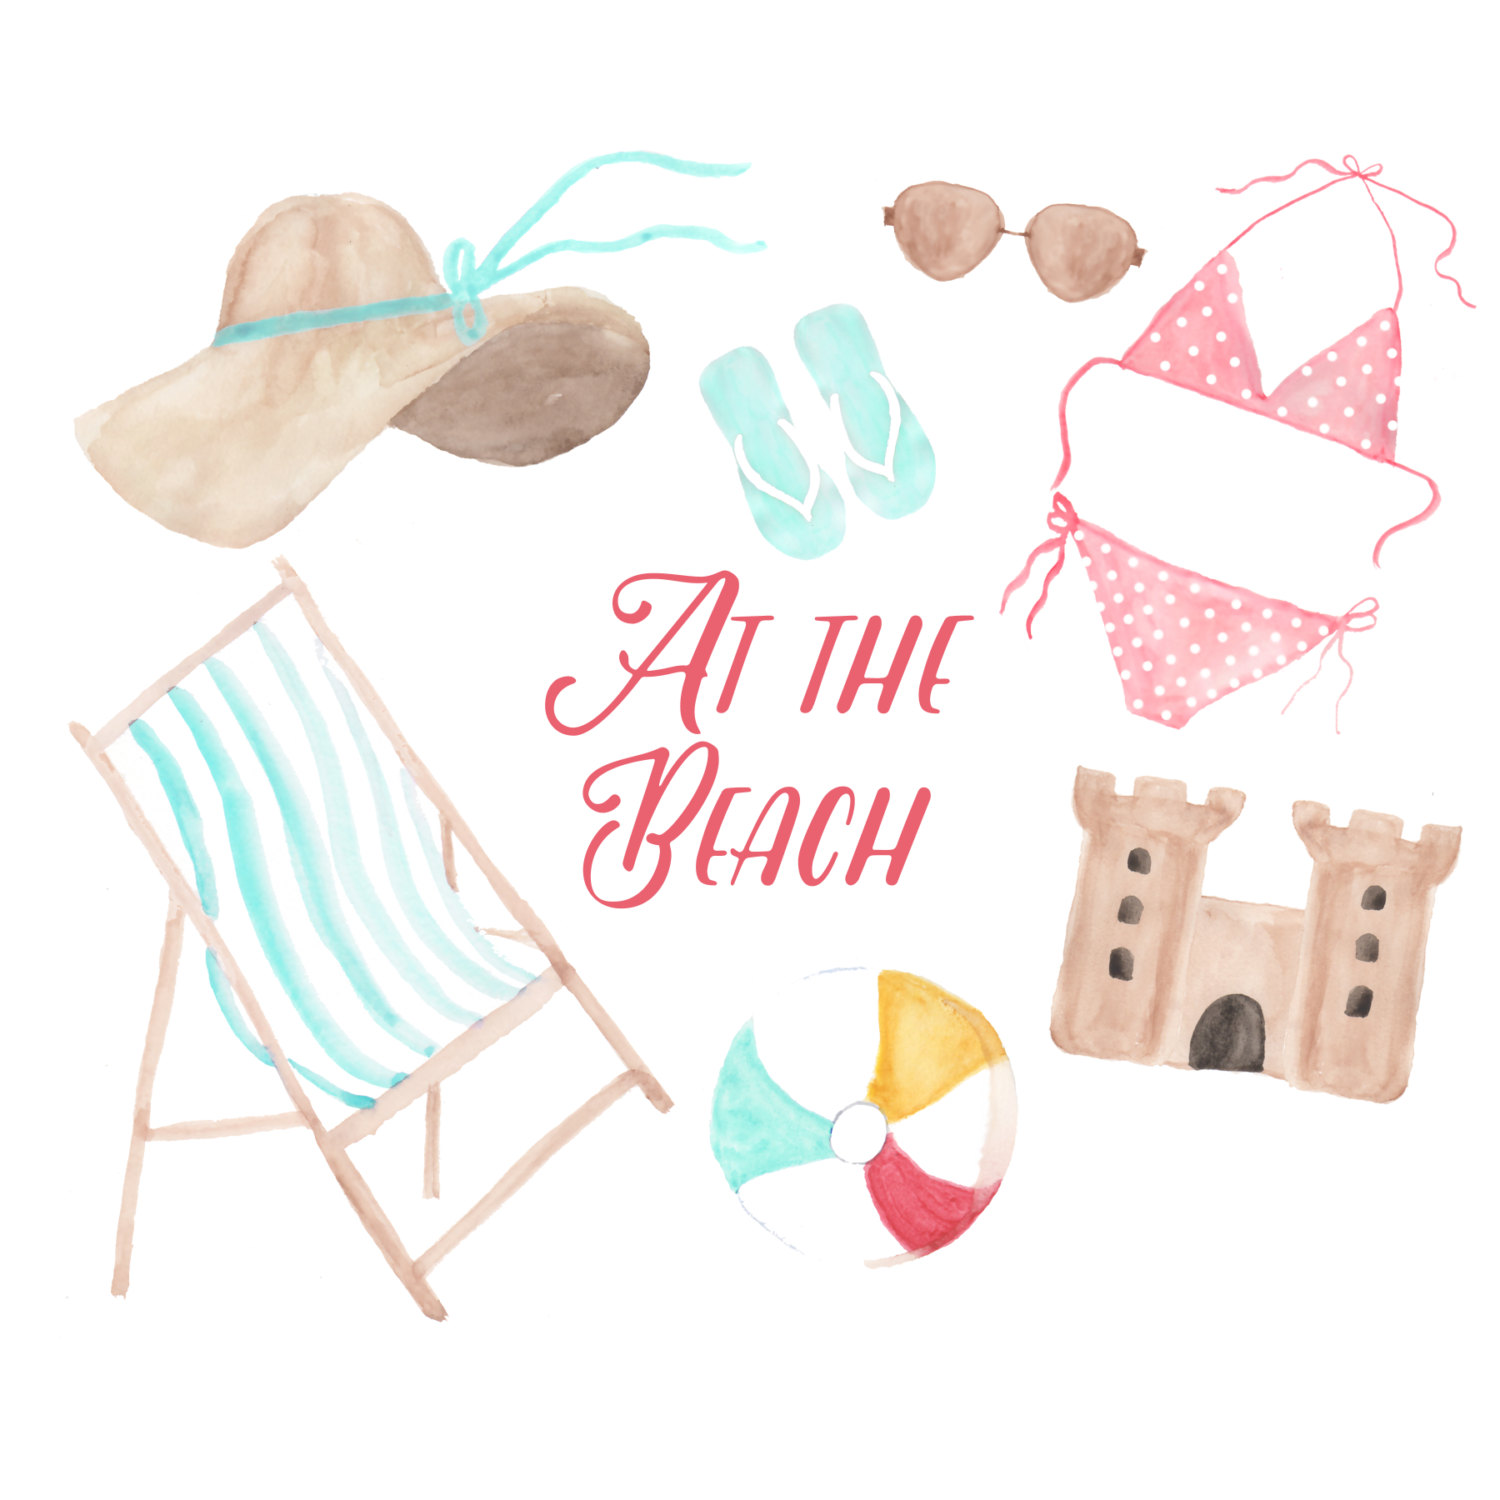 Bikini clipart beach sunglass Summer beach clipart beach illustration